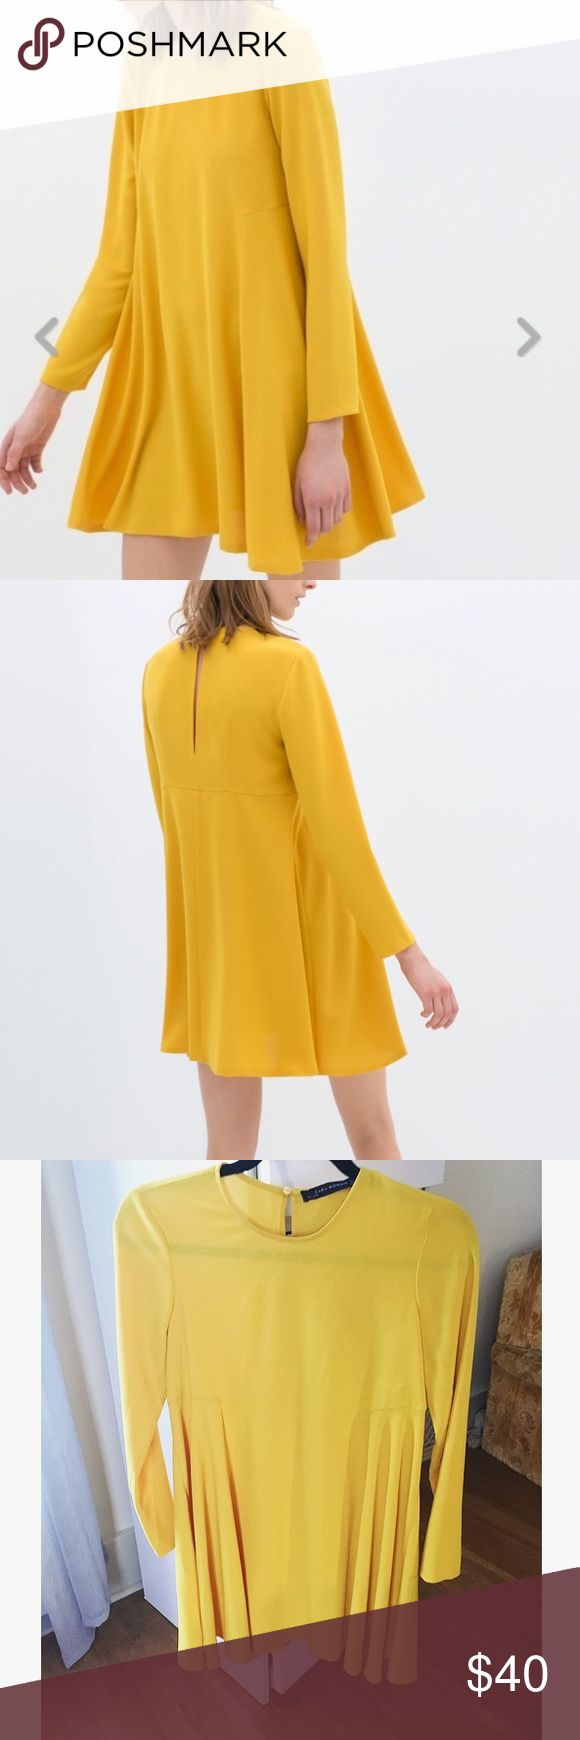 Yellow long sleeve Zara dress out of stock! Long sleeve golden/ mustard yellow Zara dress perfect for fall! Still has tags. Very minor defect on the front seam seem picture. Length: 32 inches, armpit to armpit: 16.5 inches model photos grabbed from searching or the Zara website. Zara Dresses Long Sleeve